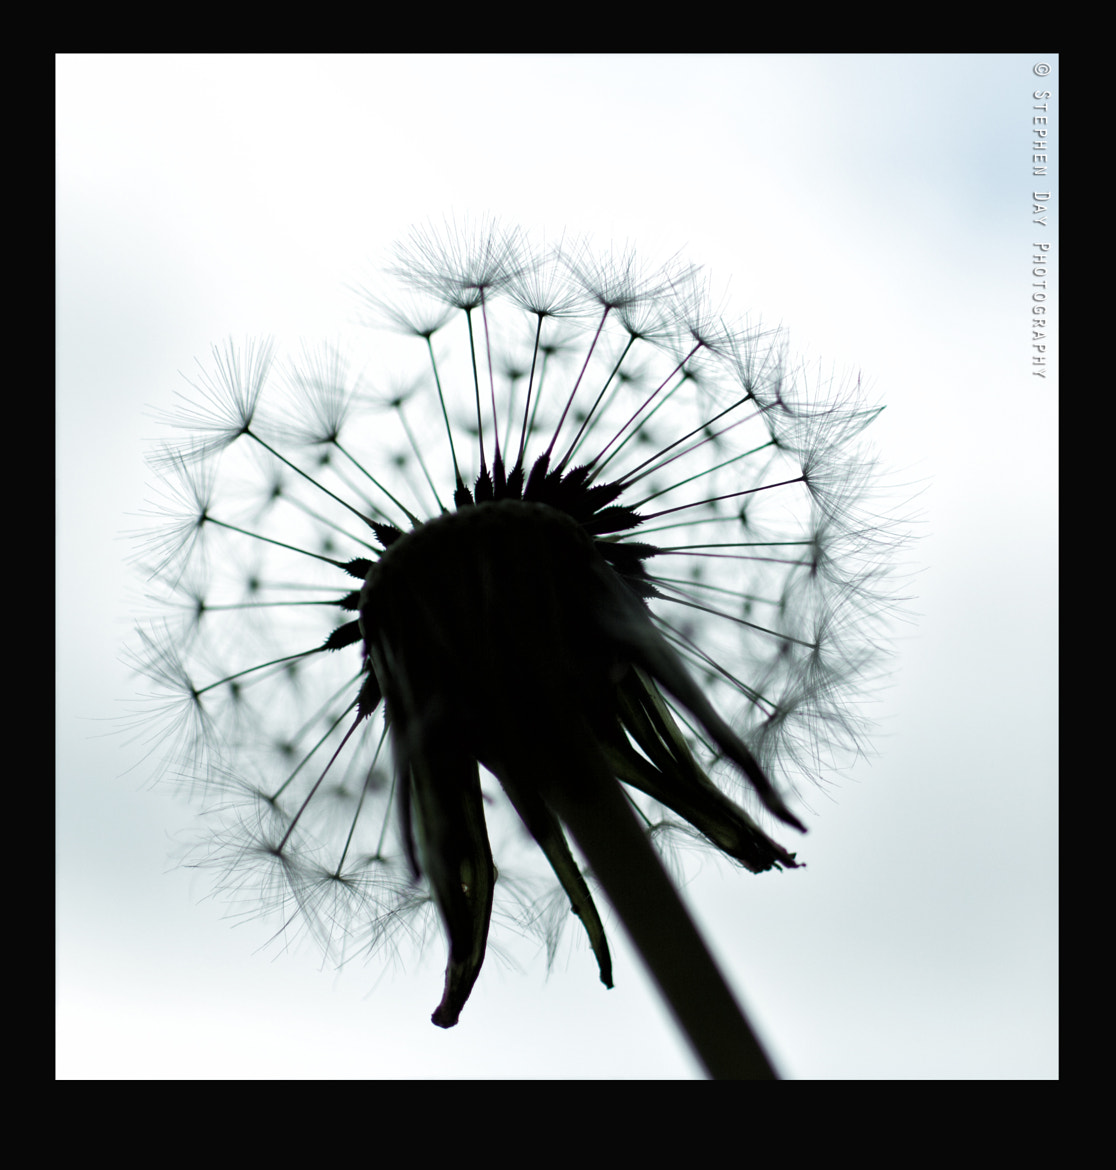 Photograph ''Dandelion Silhouette'' by Stephen Day Photography on 500px